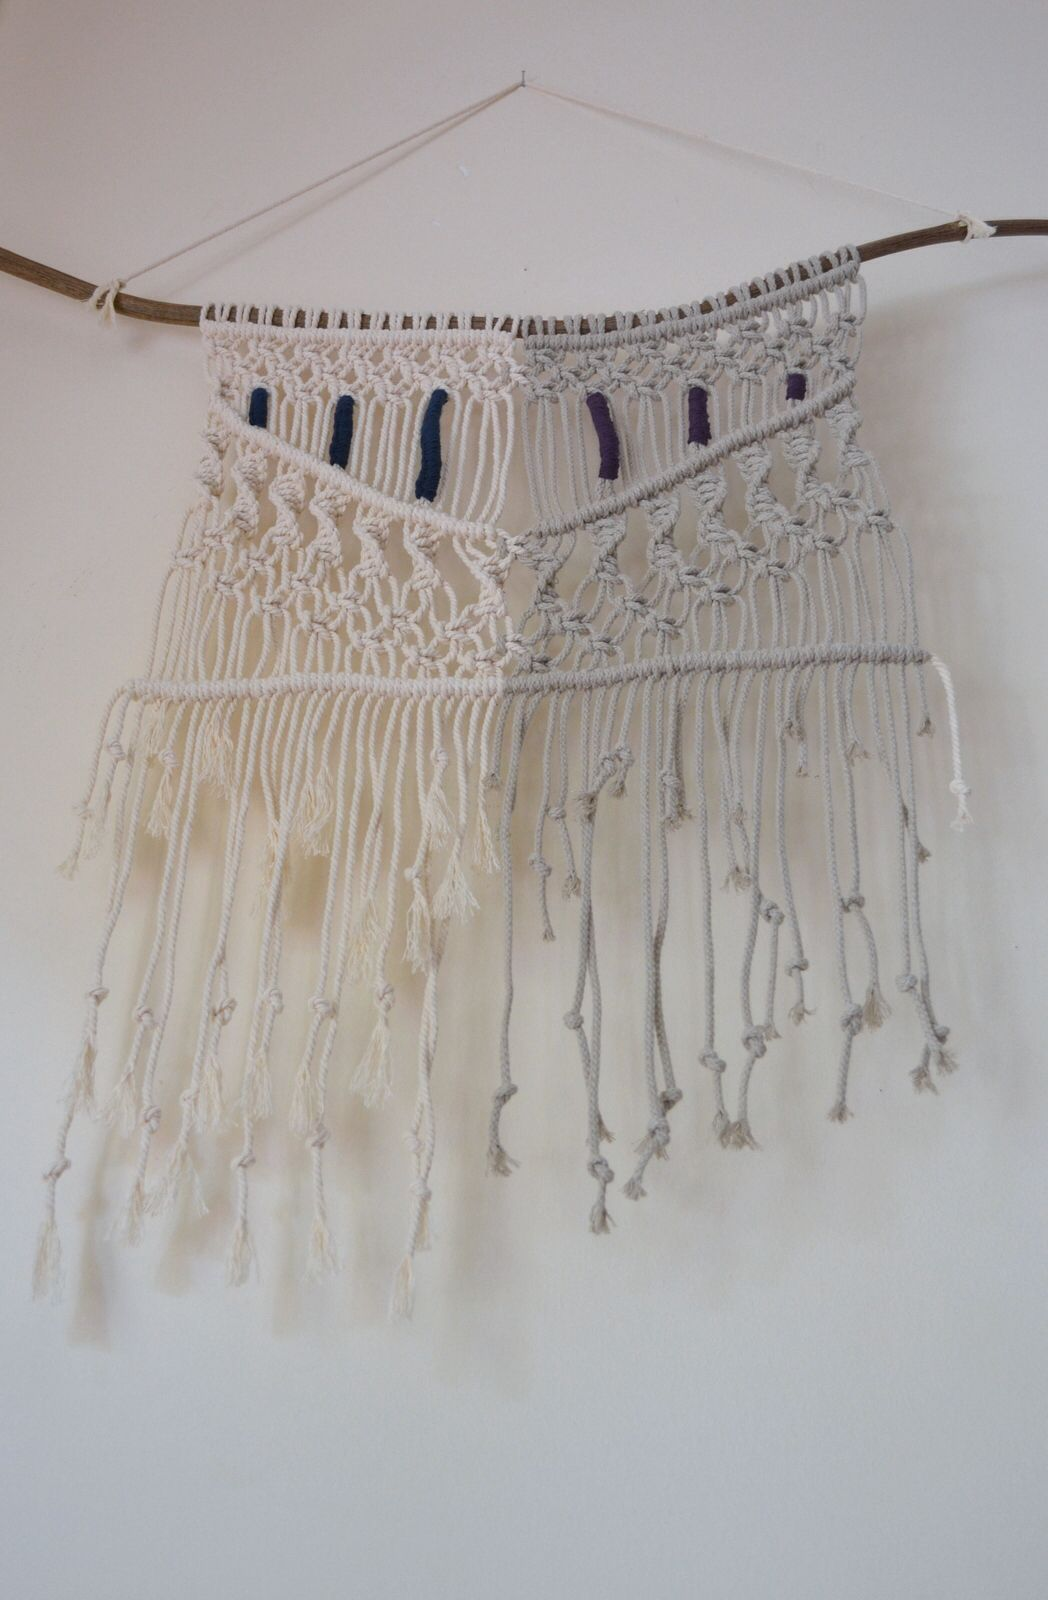 bohemian, ethnic, tribal, 70s macrame wall hanging with natural